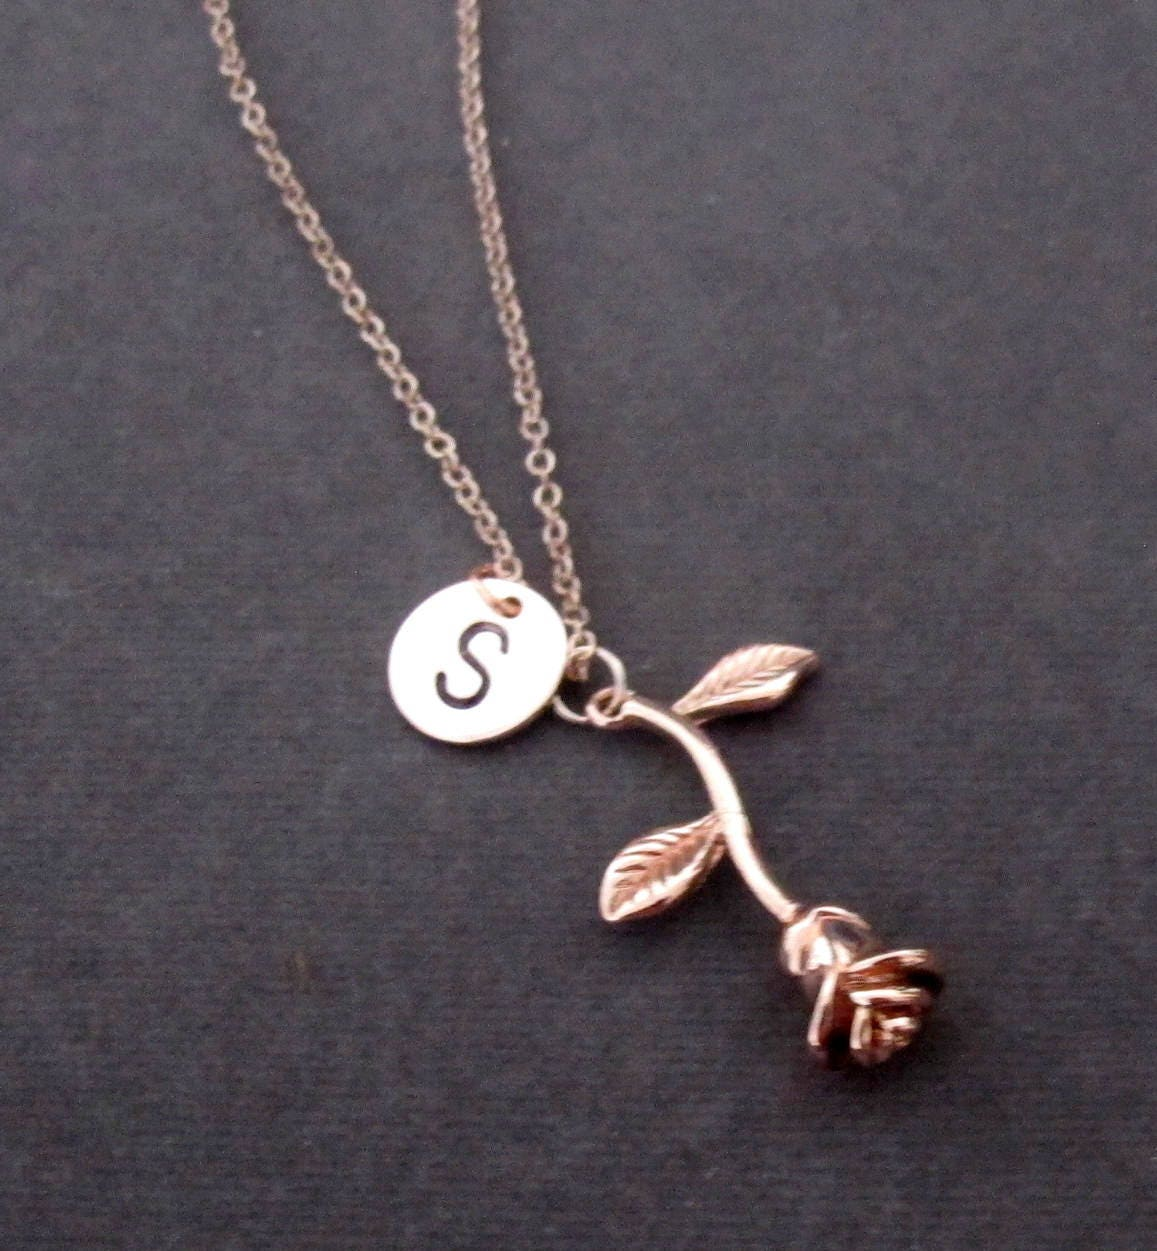 Rose gold rose necklacerose flower charmrose gold initial necklace free shipping on all orders shipped within usa low flat rate shipping for international orders aloadofball Choice Image